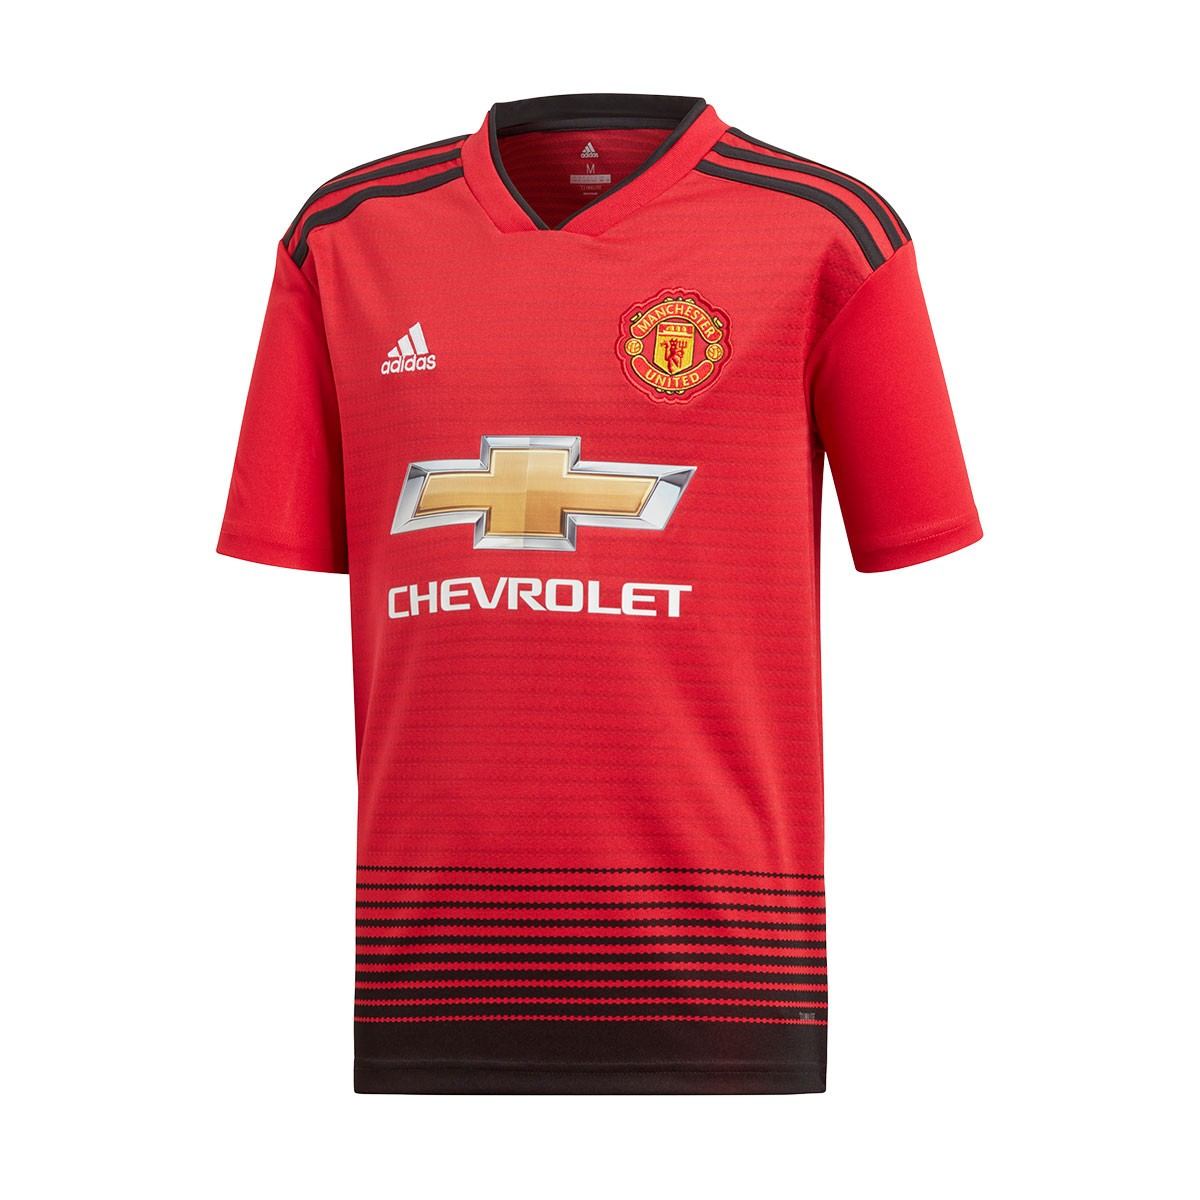 low priced c85d7 beb41 Camiseta Manchester United FC Primera Equipación 2018-2019 Niño Real  red-Black